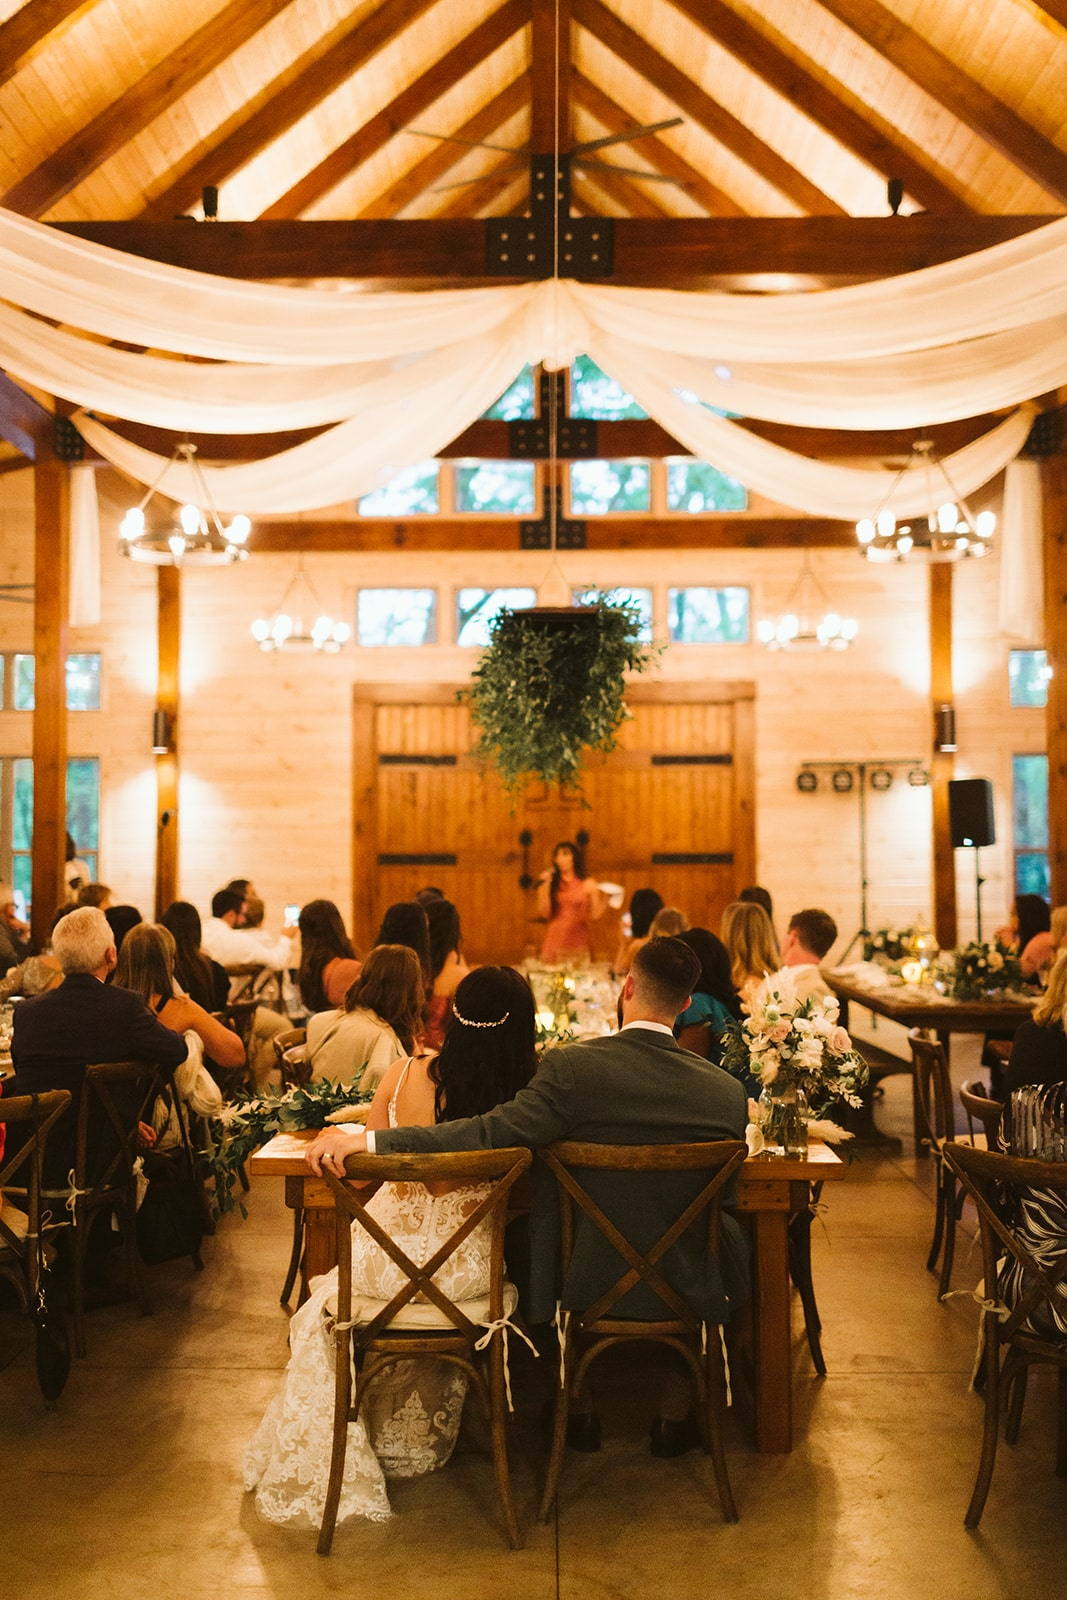 Hanging Greenery Installation Wedding, Lang Floral Designs, Chattanooga Wedding Florist and Day-of Coordinator